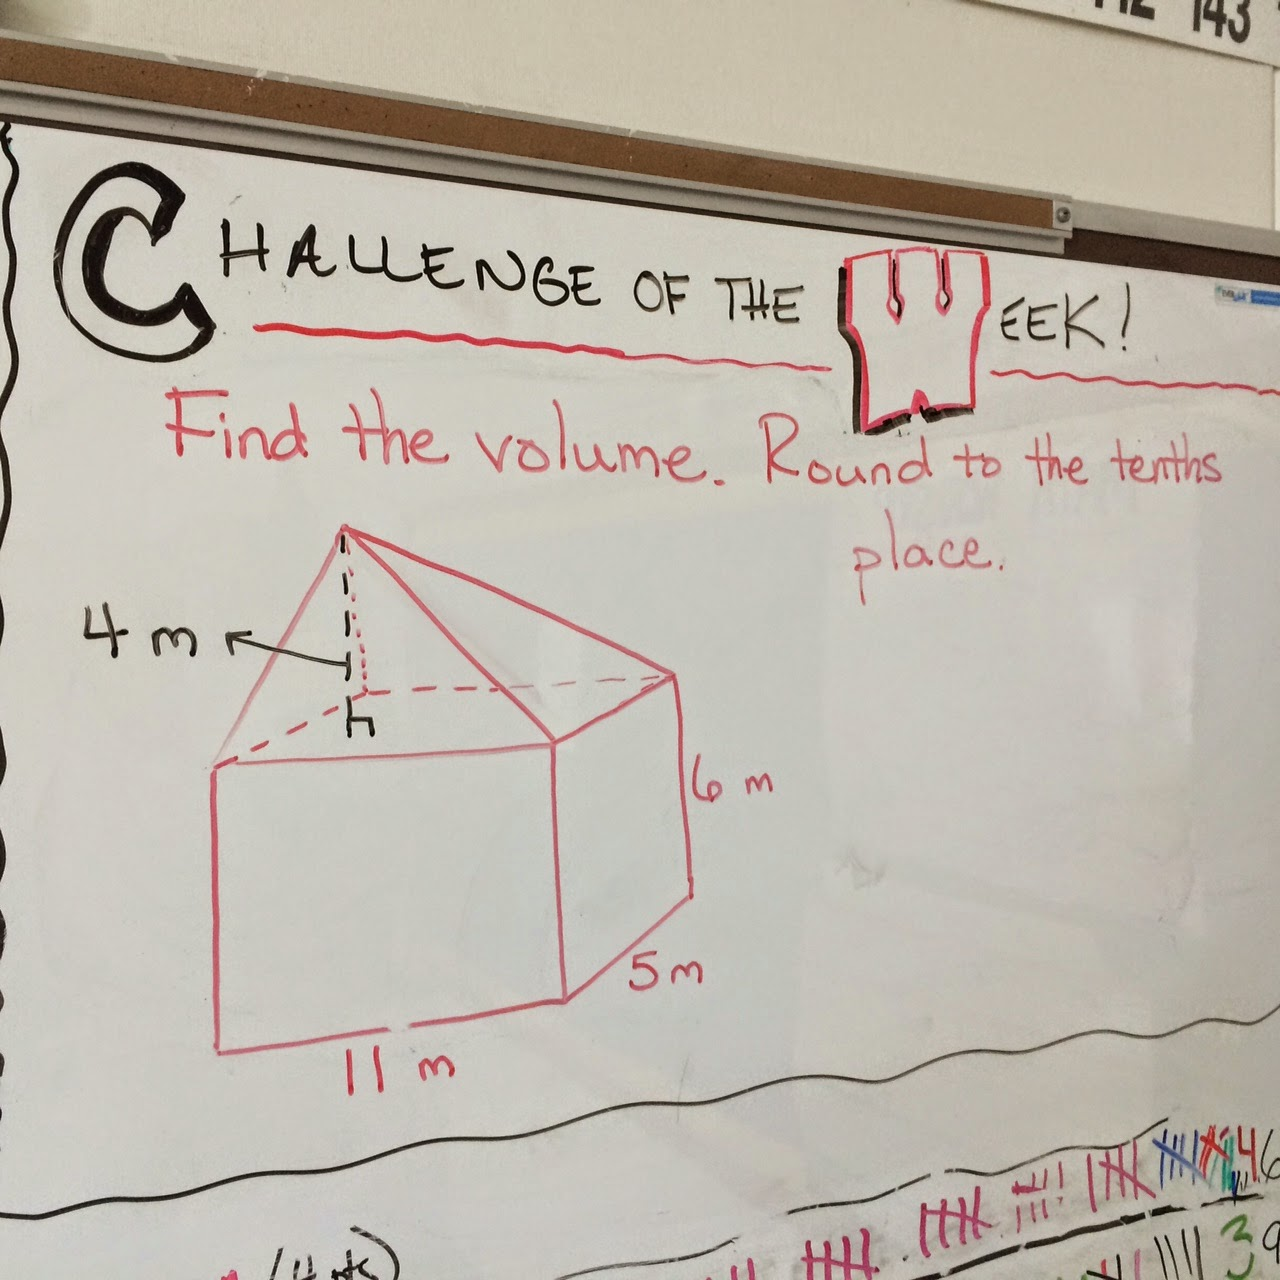 statistics problem solver online how to easily solve  middle school math man challenge of the week this might have been my favorite problem to solve